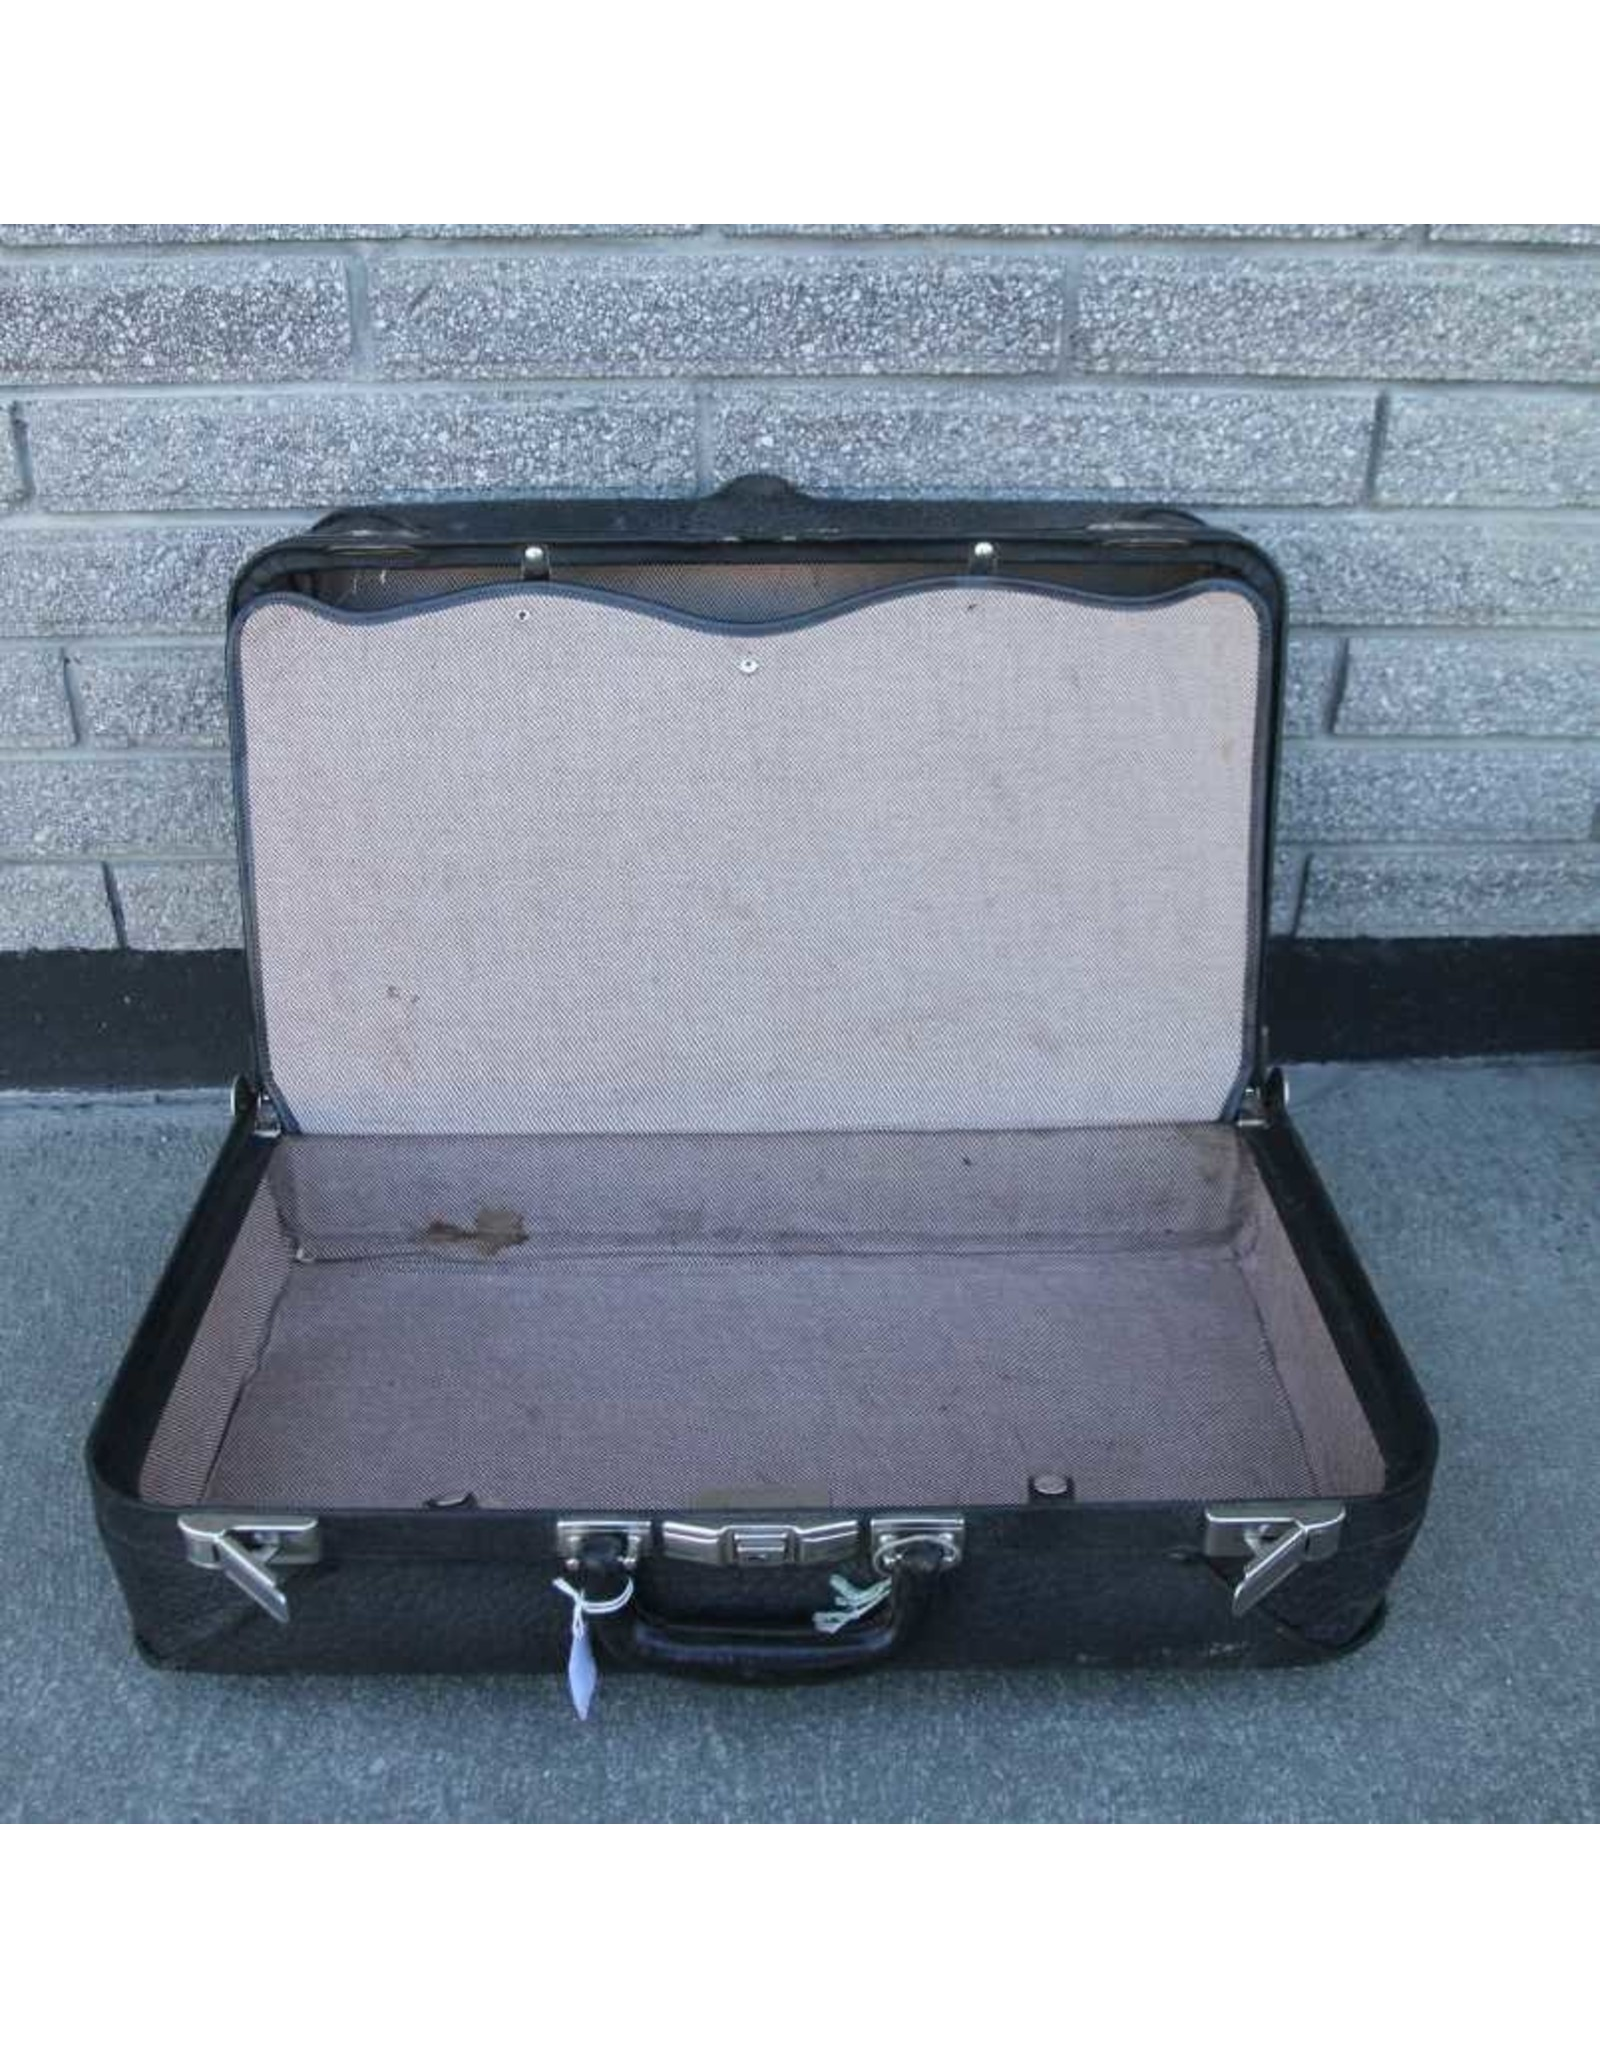 Travel case - alligator skin